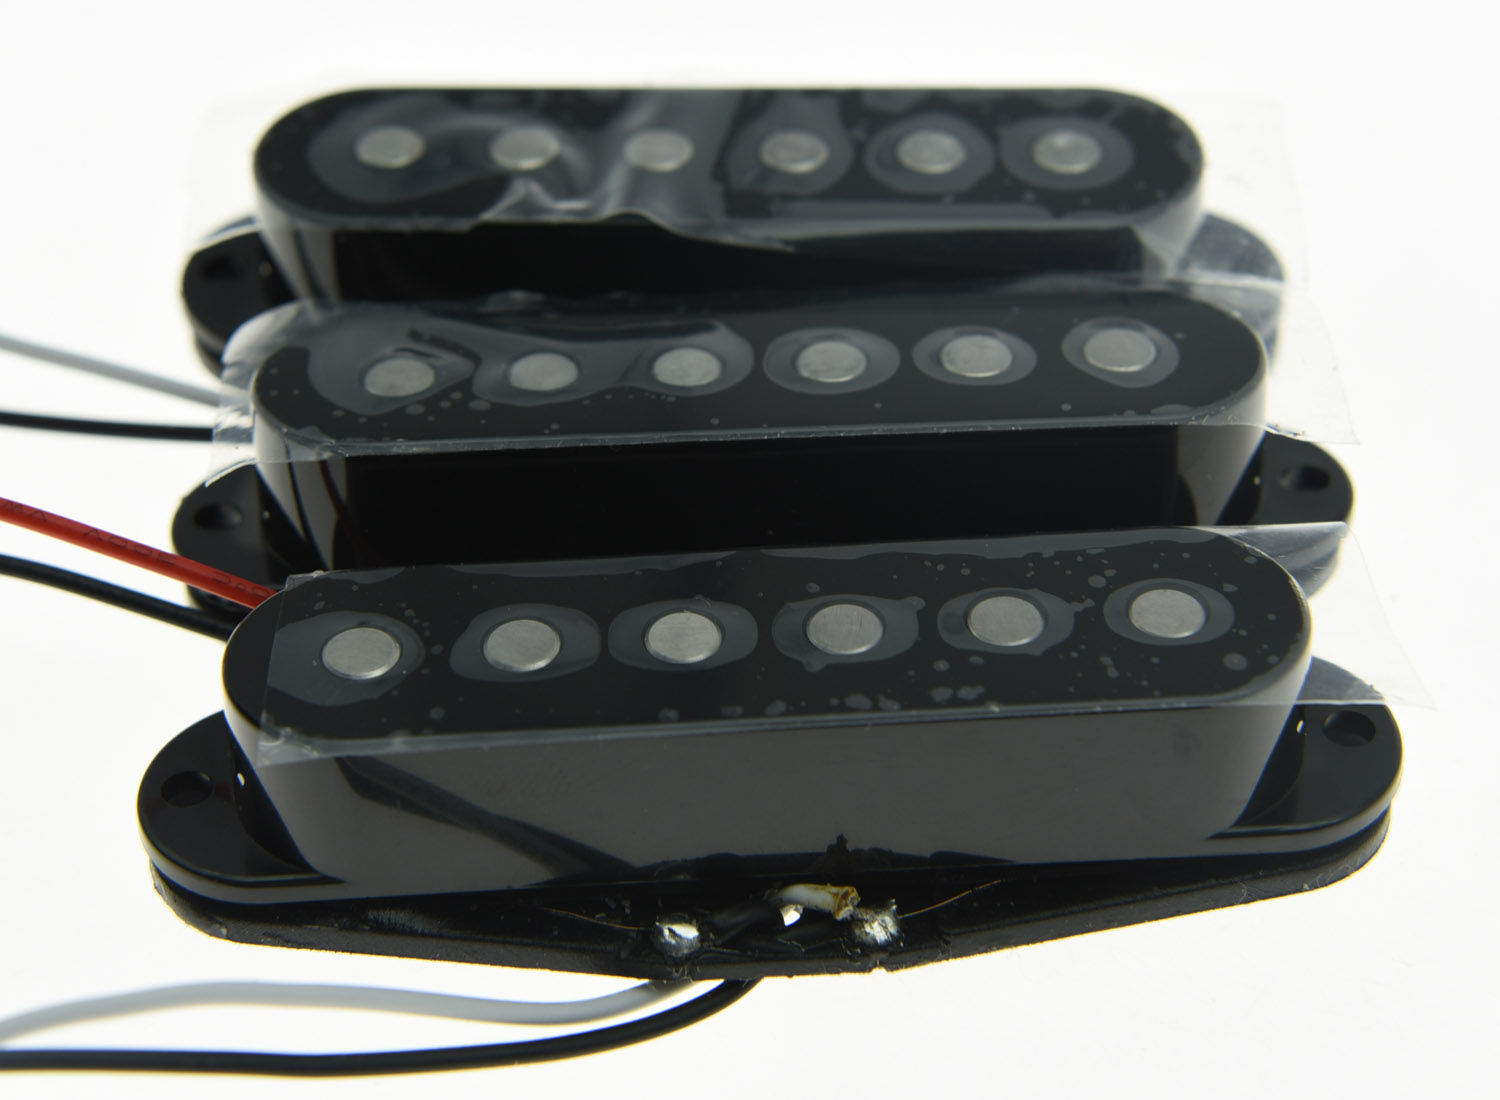 3x N/M/B Black Alnico 5 Single Coil Pickups High Output Sound Strat SSS Pickup vintage voice single coil pickups fits for stratocaster ceramic bobbin alnico single coil guitar pickup staggered pole top